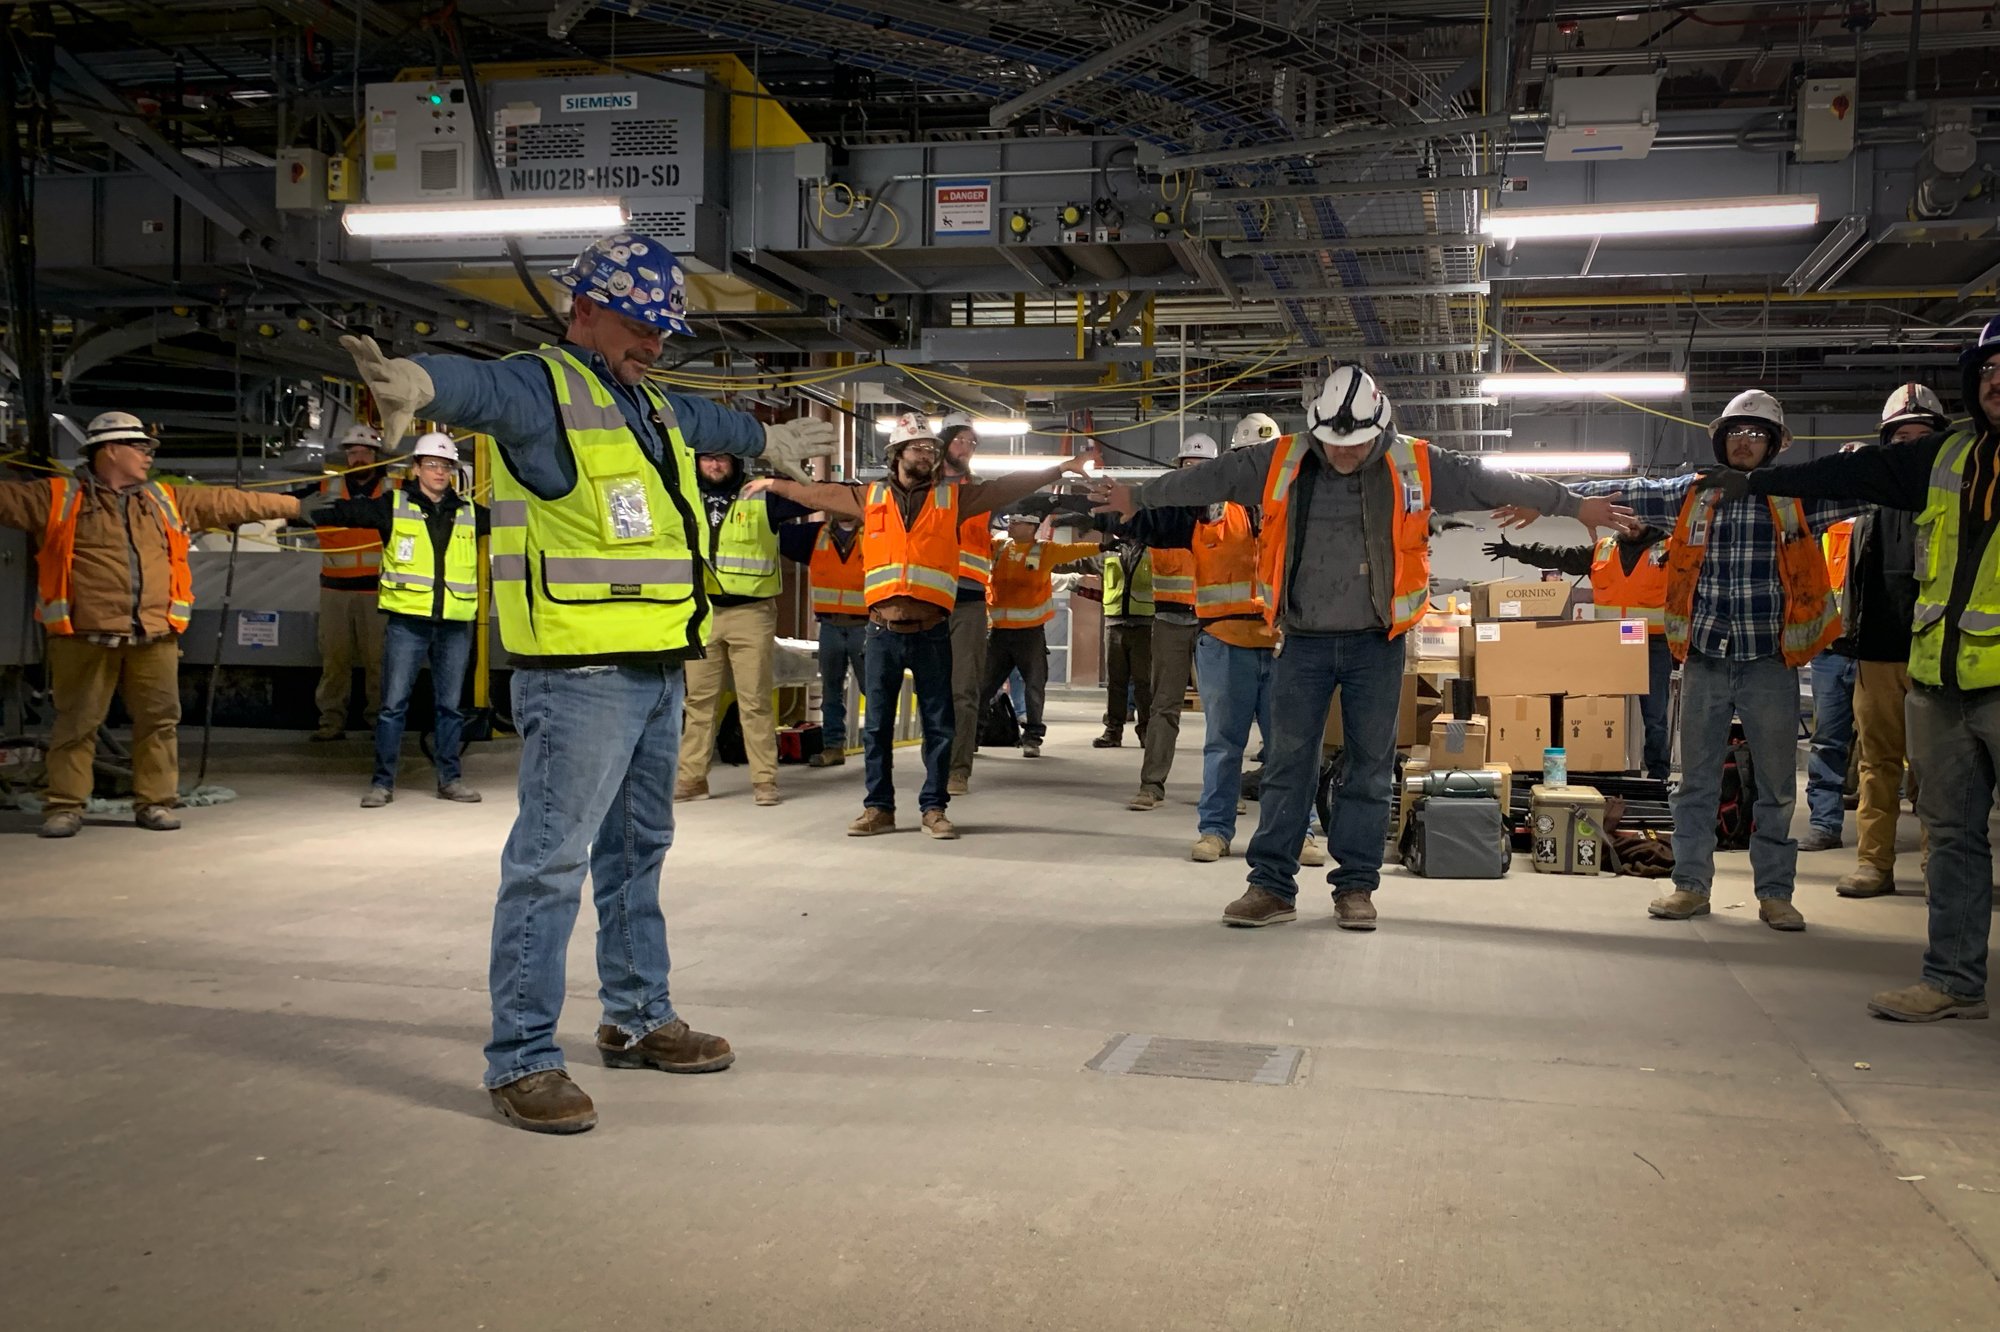 A Construction Company Embraces Frank Talk About Mental Health To Reduce Suicide